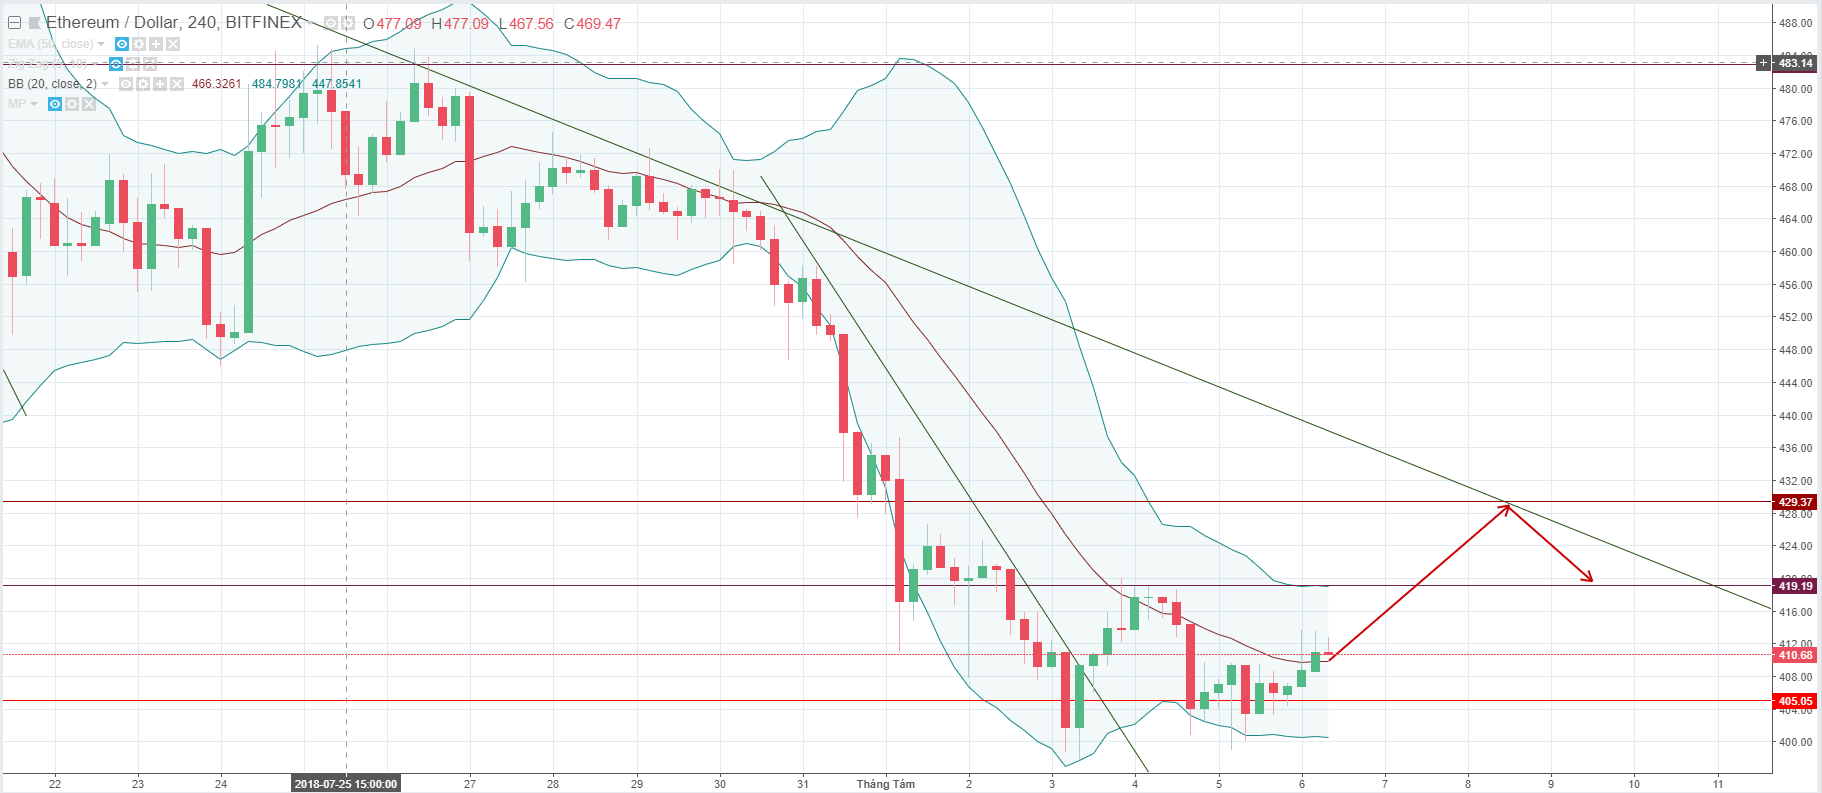 ETH price, USD, cryptocurrency, ETH price analysis, ETH price forecast, Ethereum price forecast, Ethereum price analysis